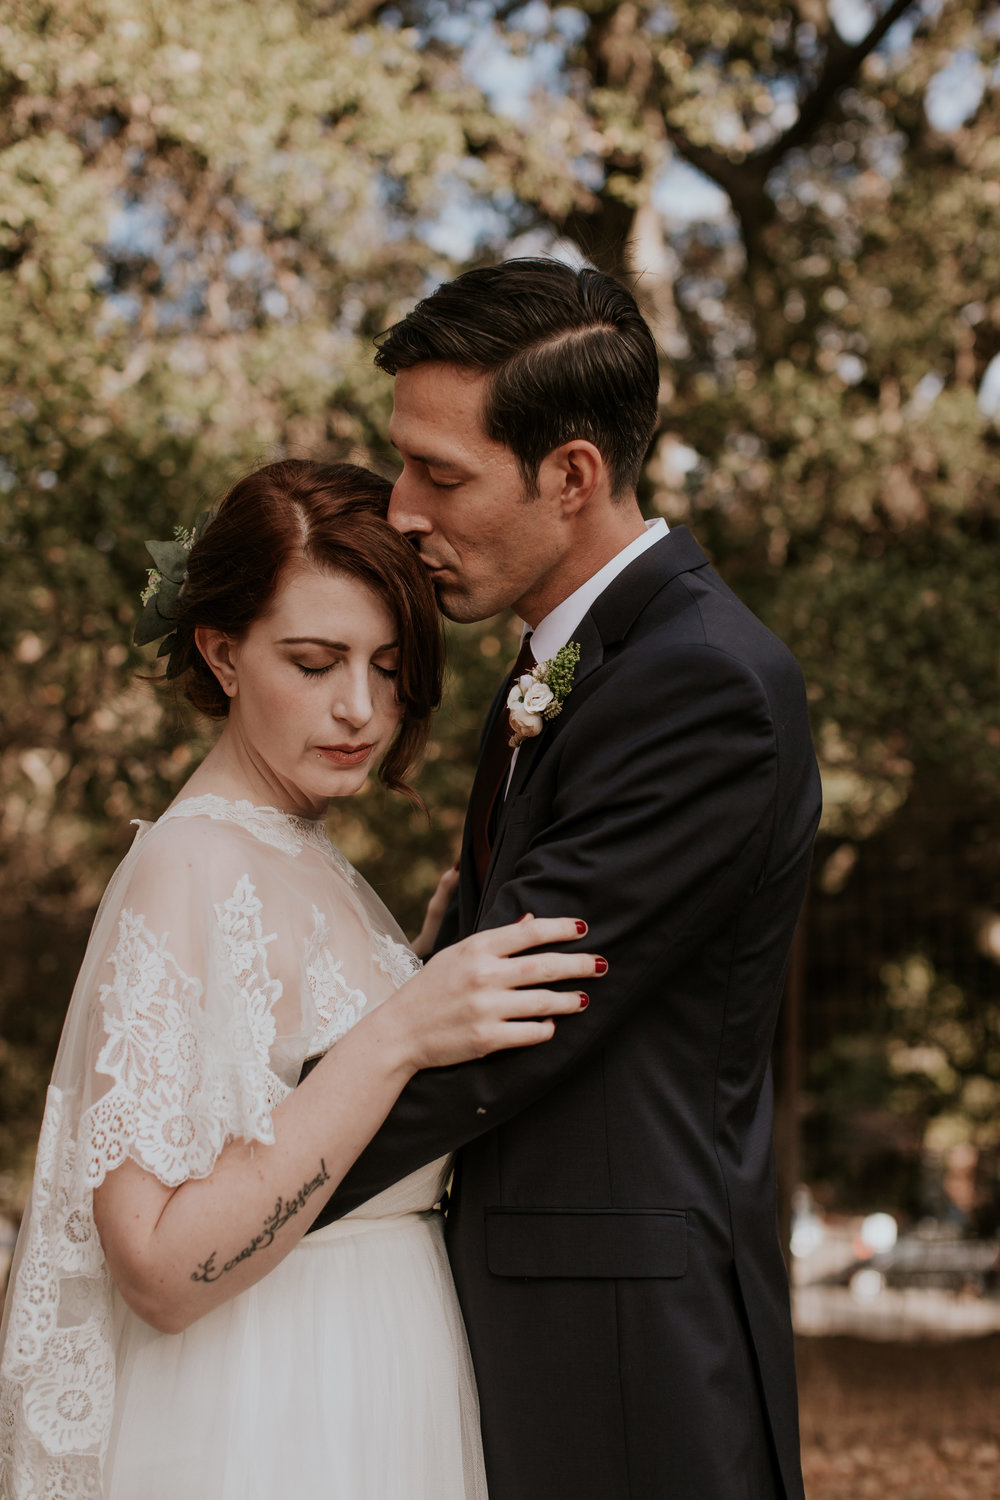 Aryn and Dave Inn of the Seventh Ray Topanga Canyon Wedding-9.jpg